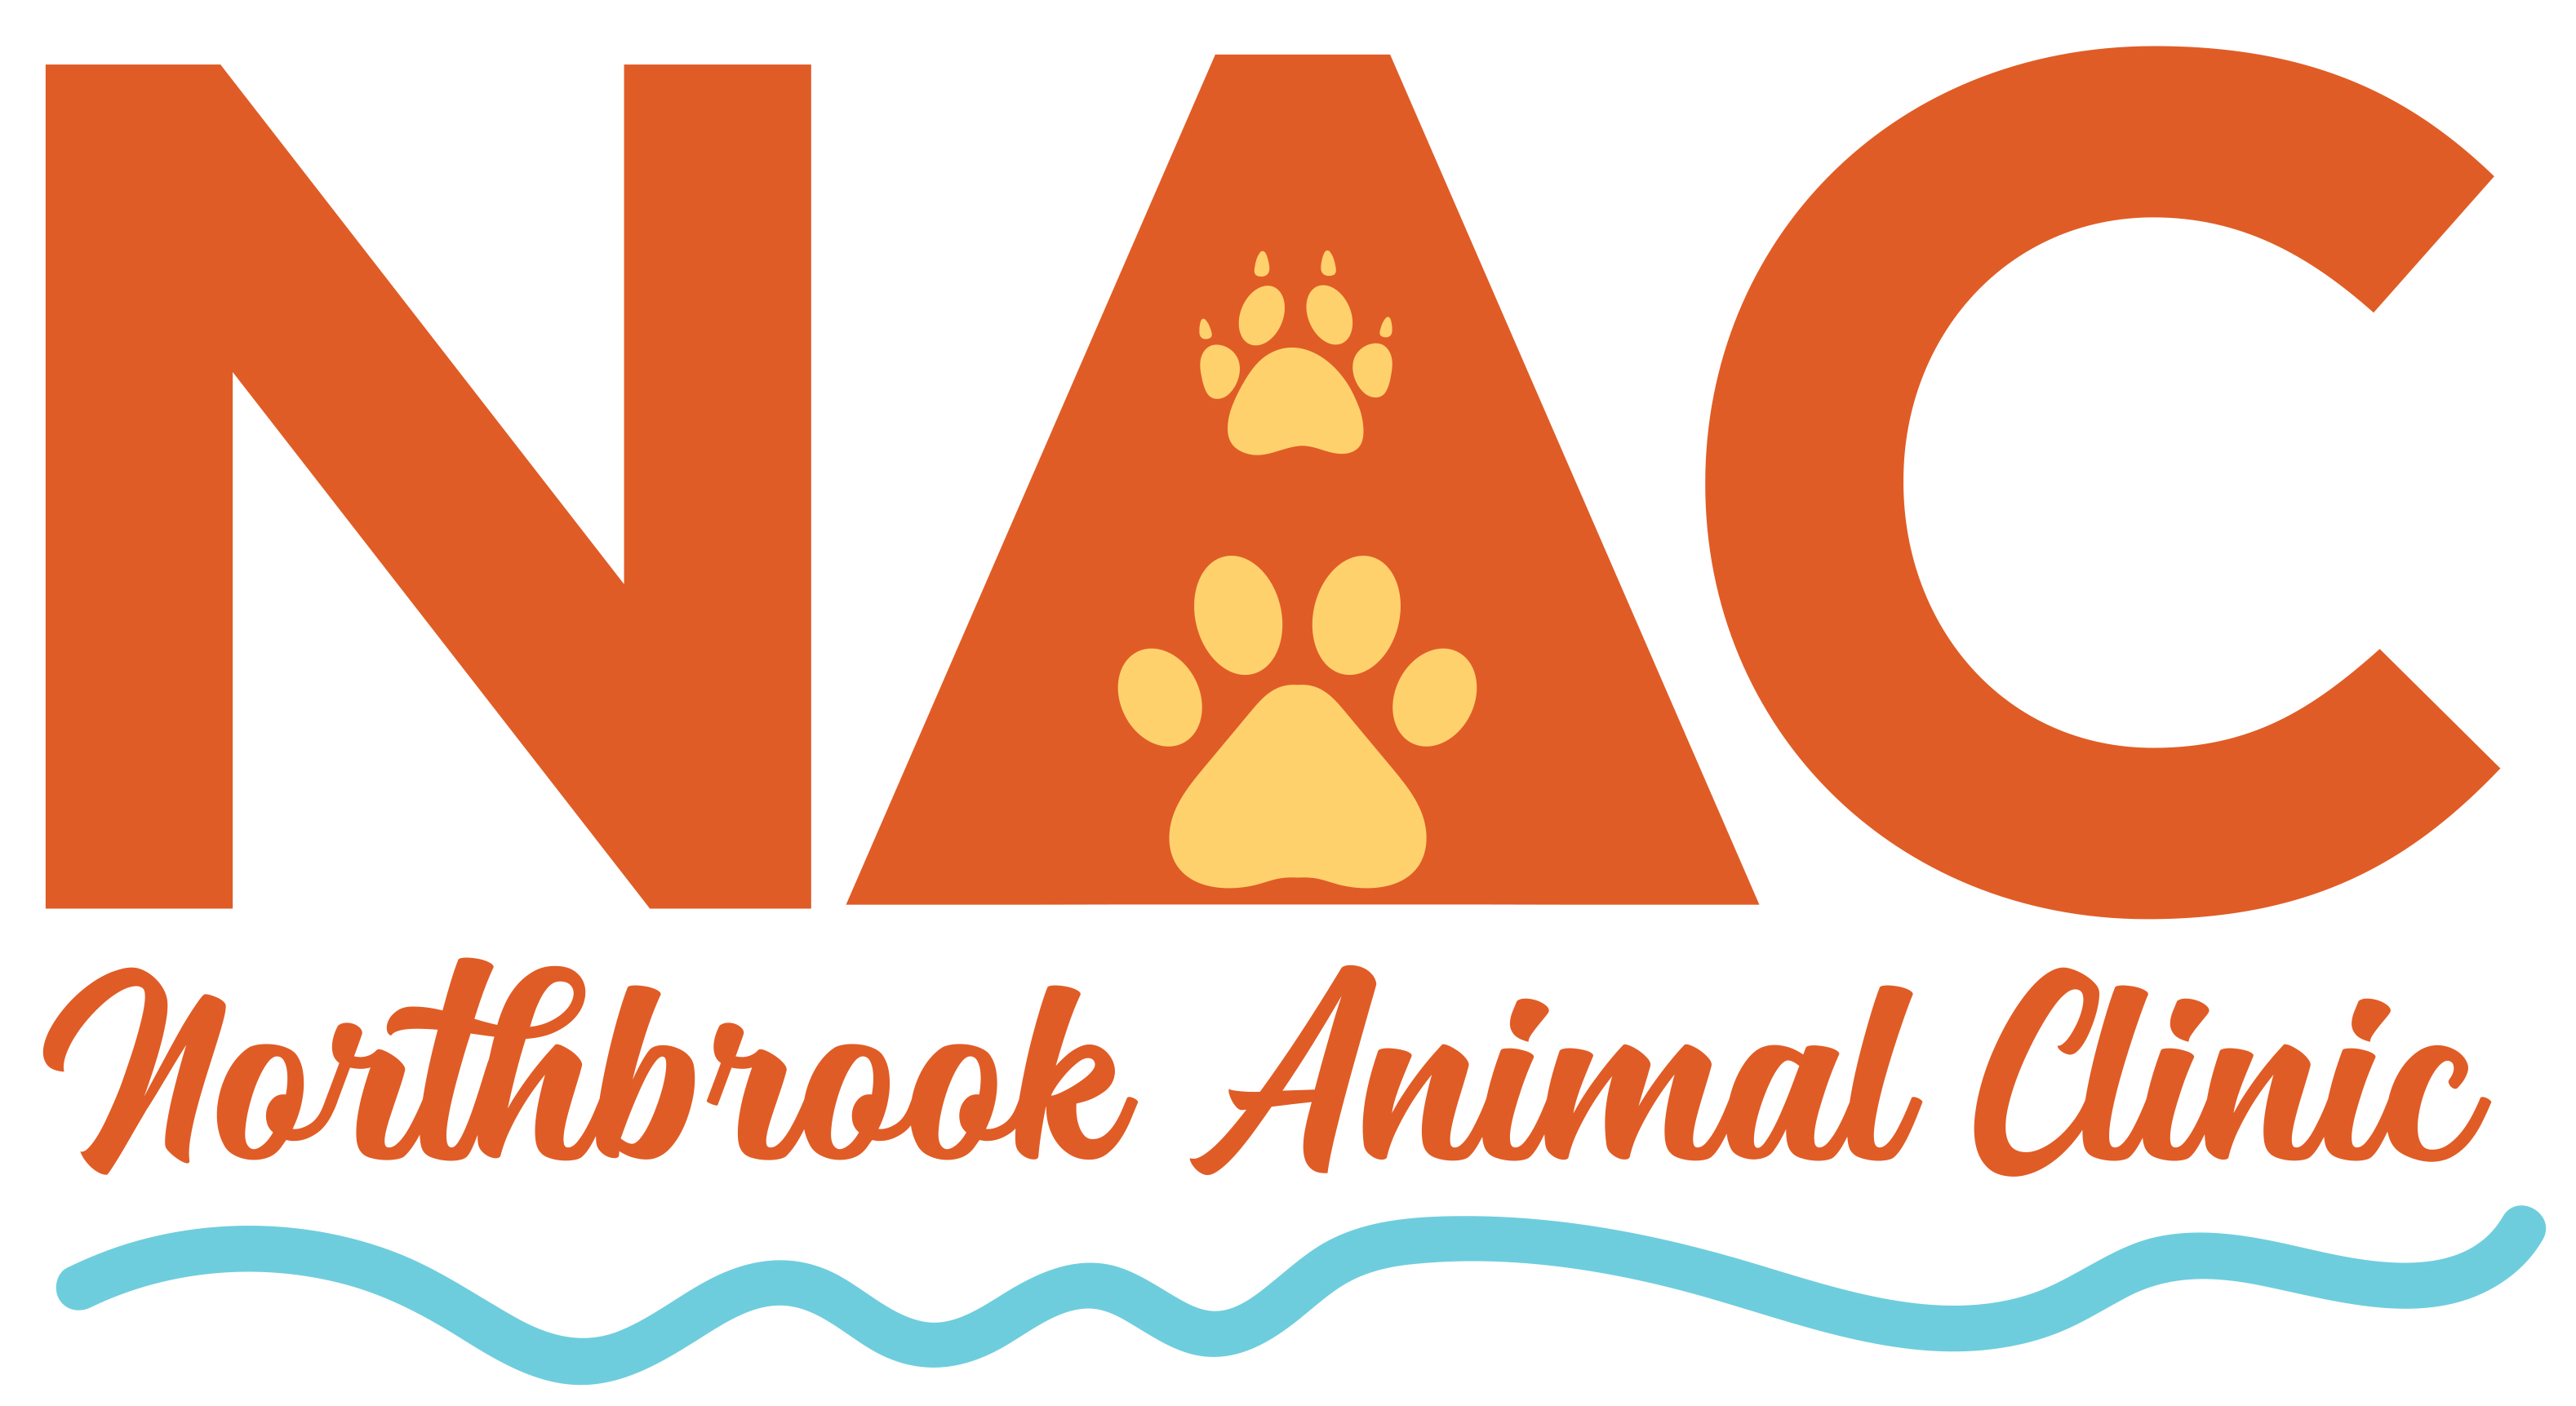 Northbrook, IL Veterinarian Animal Clinic | Northbrook Animal Clinic